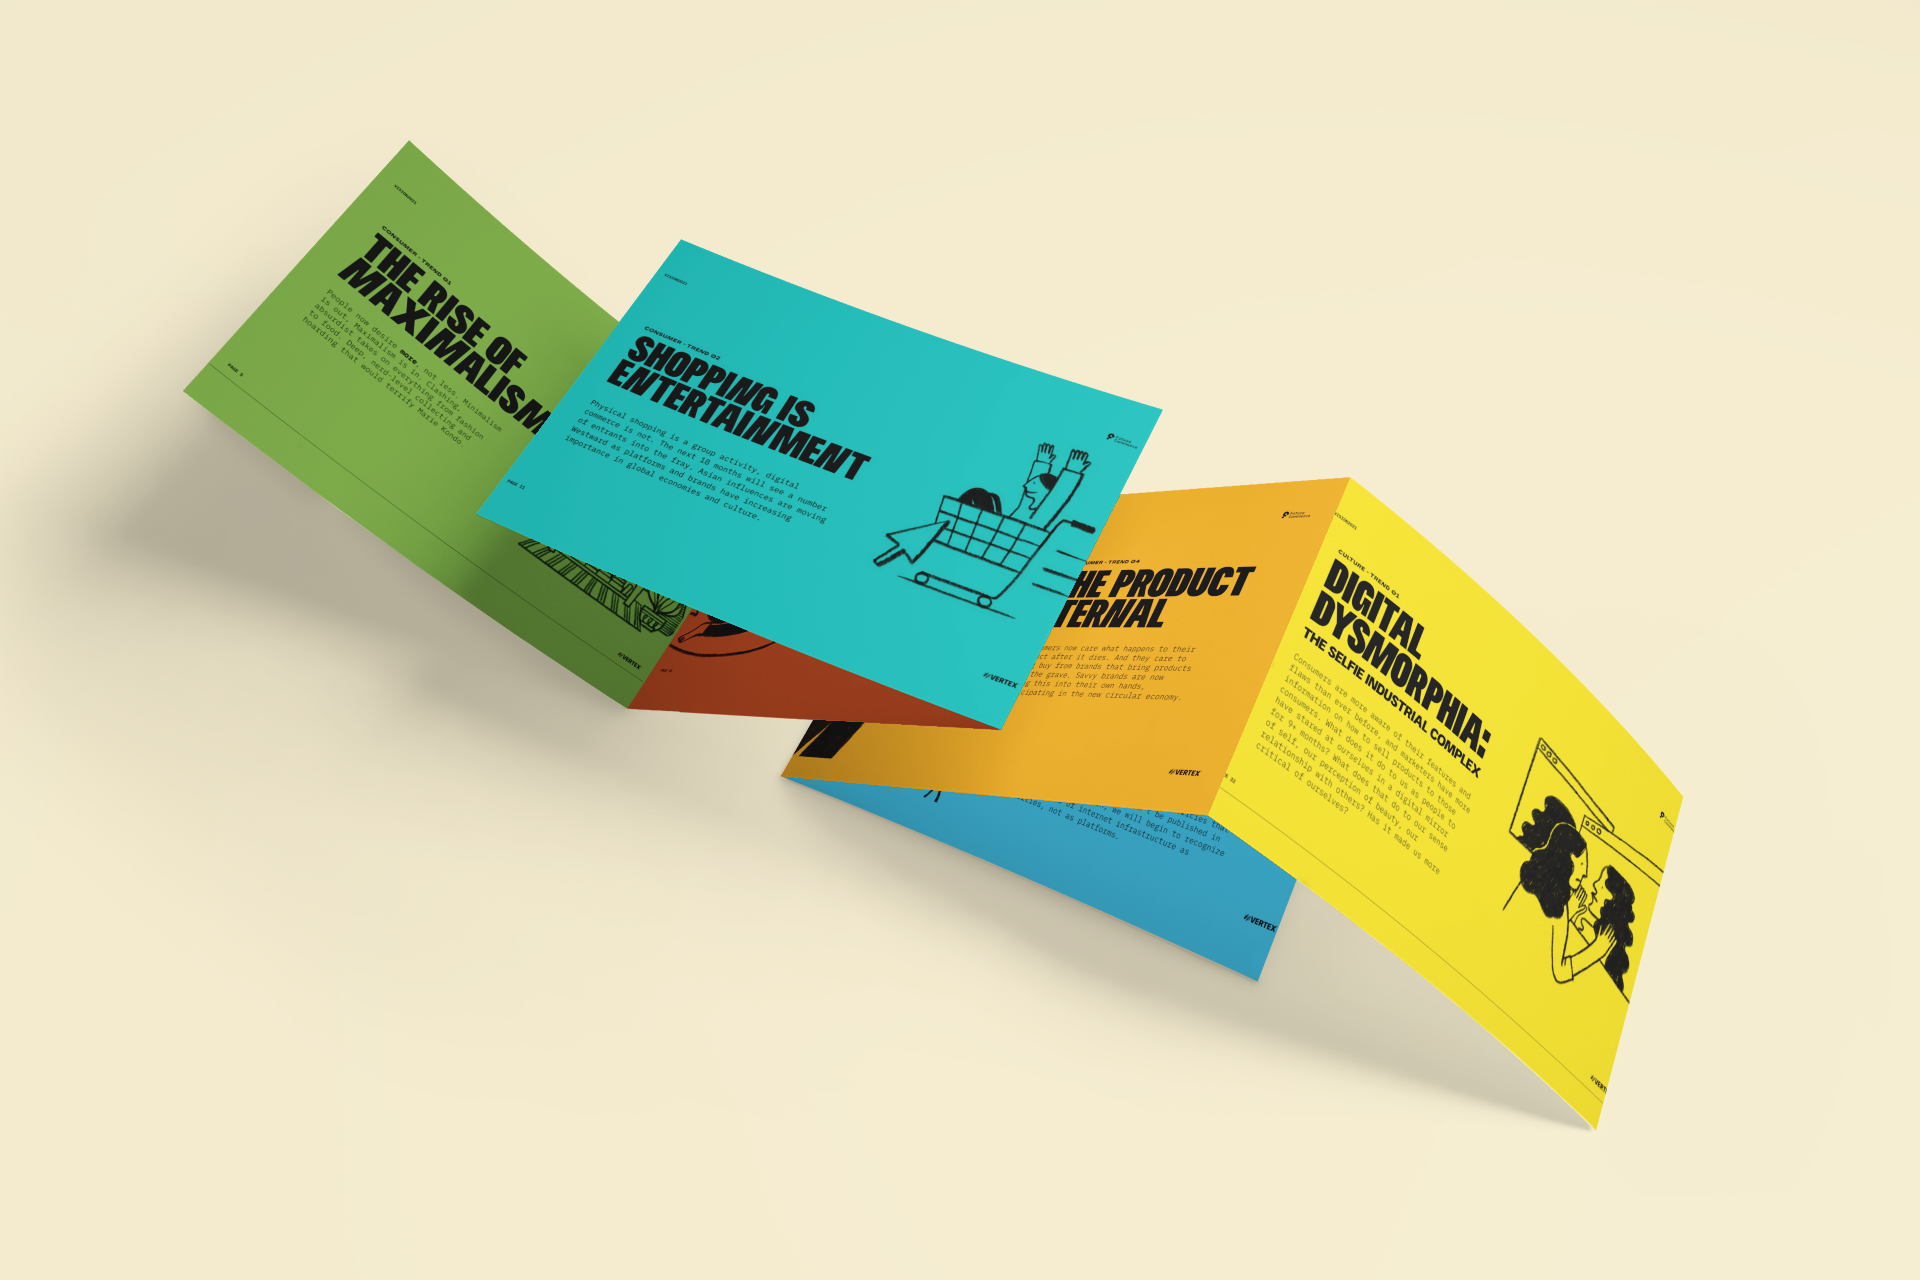 mockup-featuring-two-trifold-brochures-placed-against-a-solid-color-background-278-el